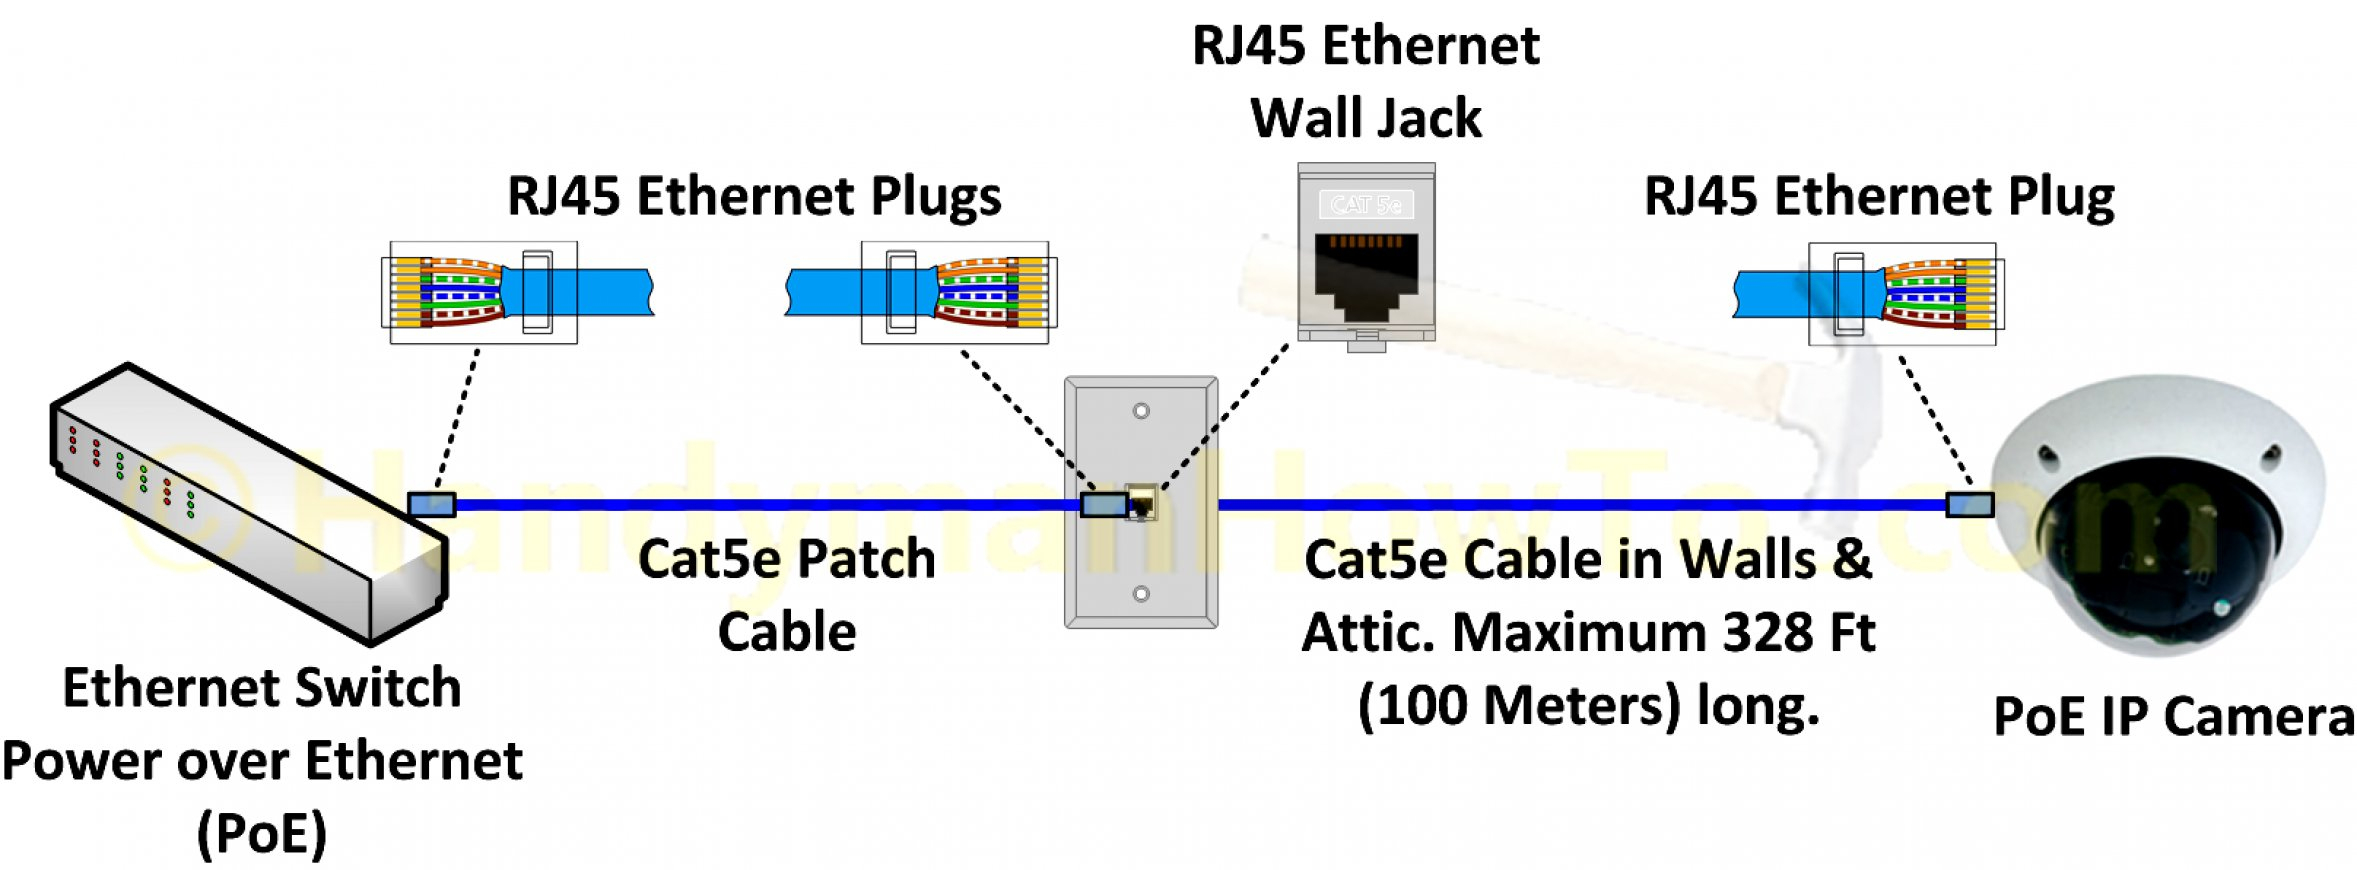 Cat6 Home Wiring | Wiring Diagram - Cat 6 Wiring Diagram Rj45